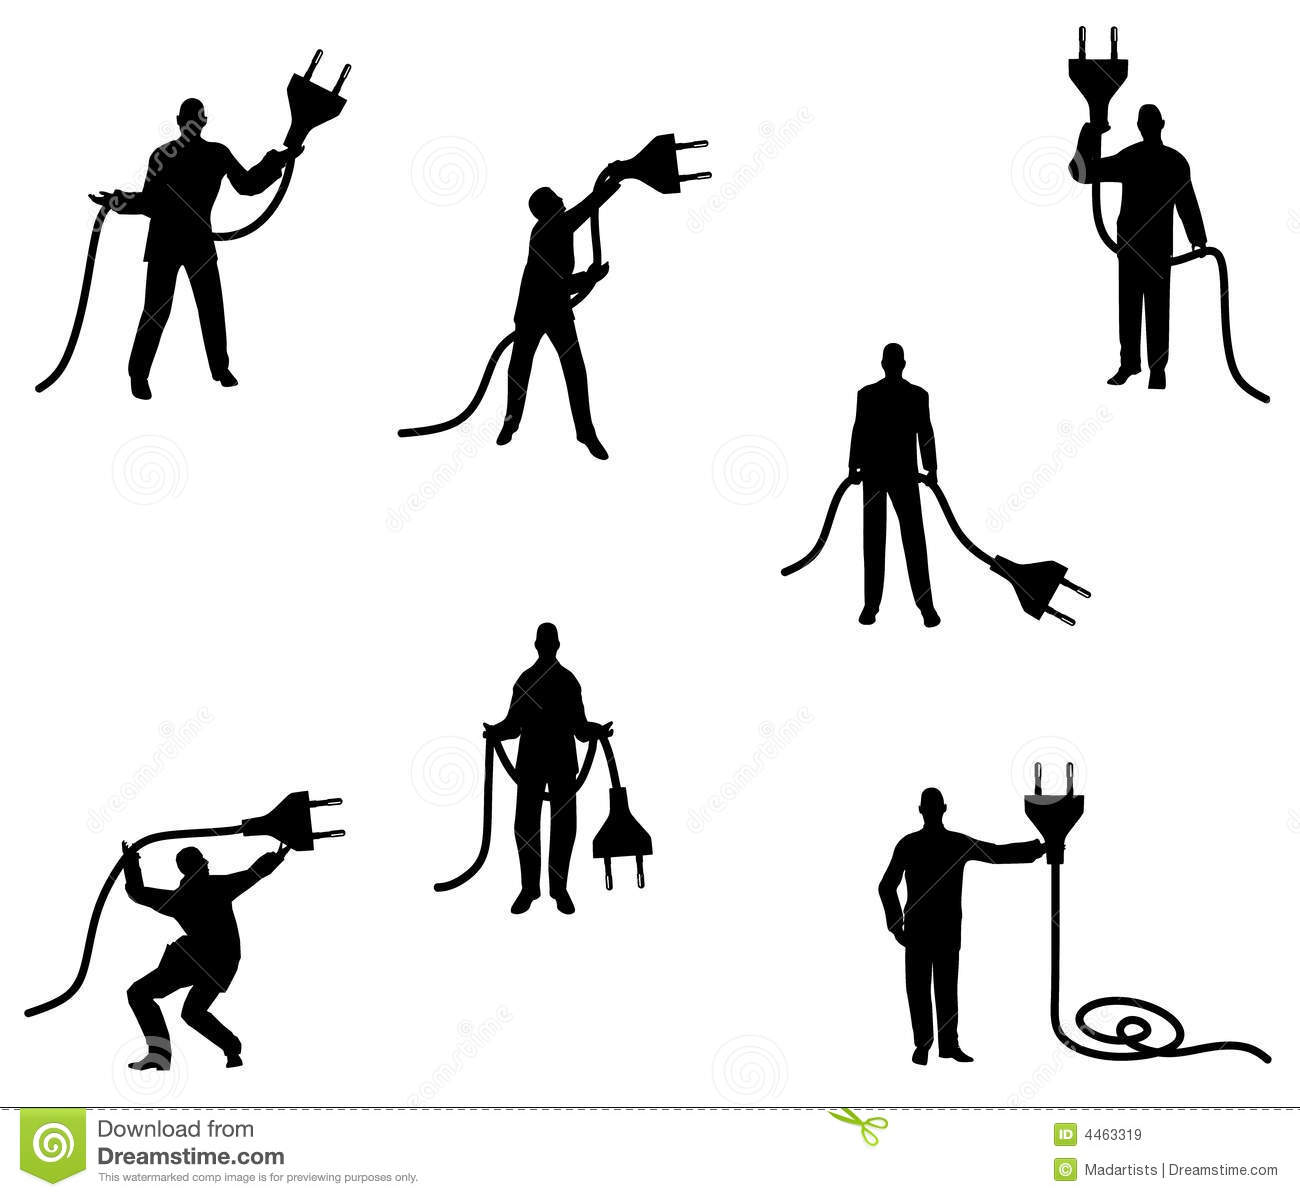 Unplugged Male Silhouettes Royalty Free Stock Images